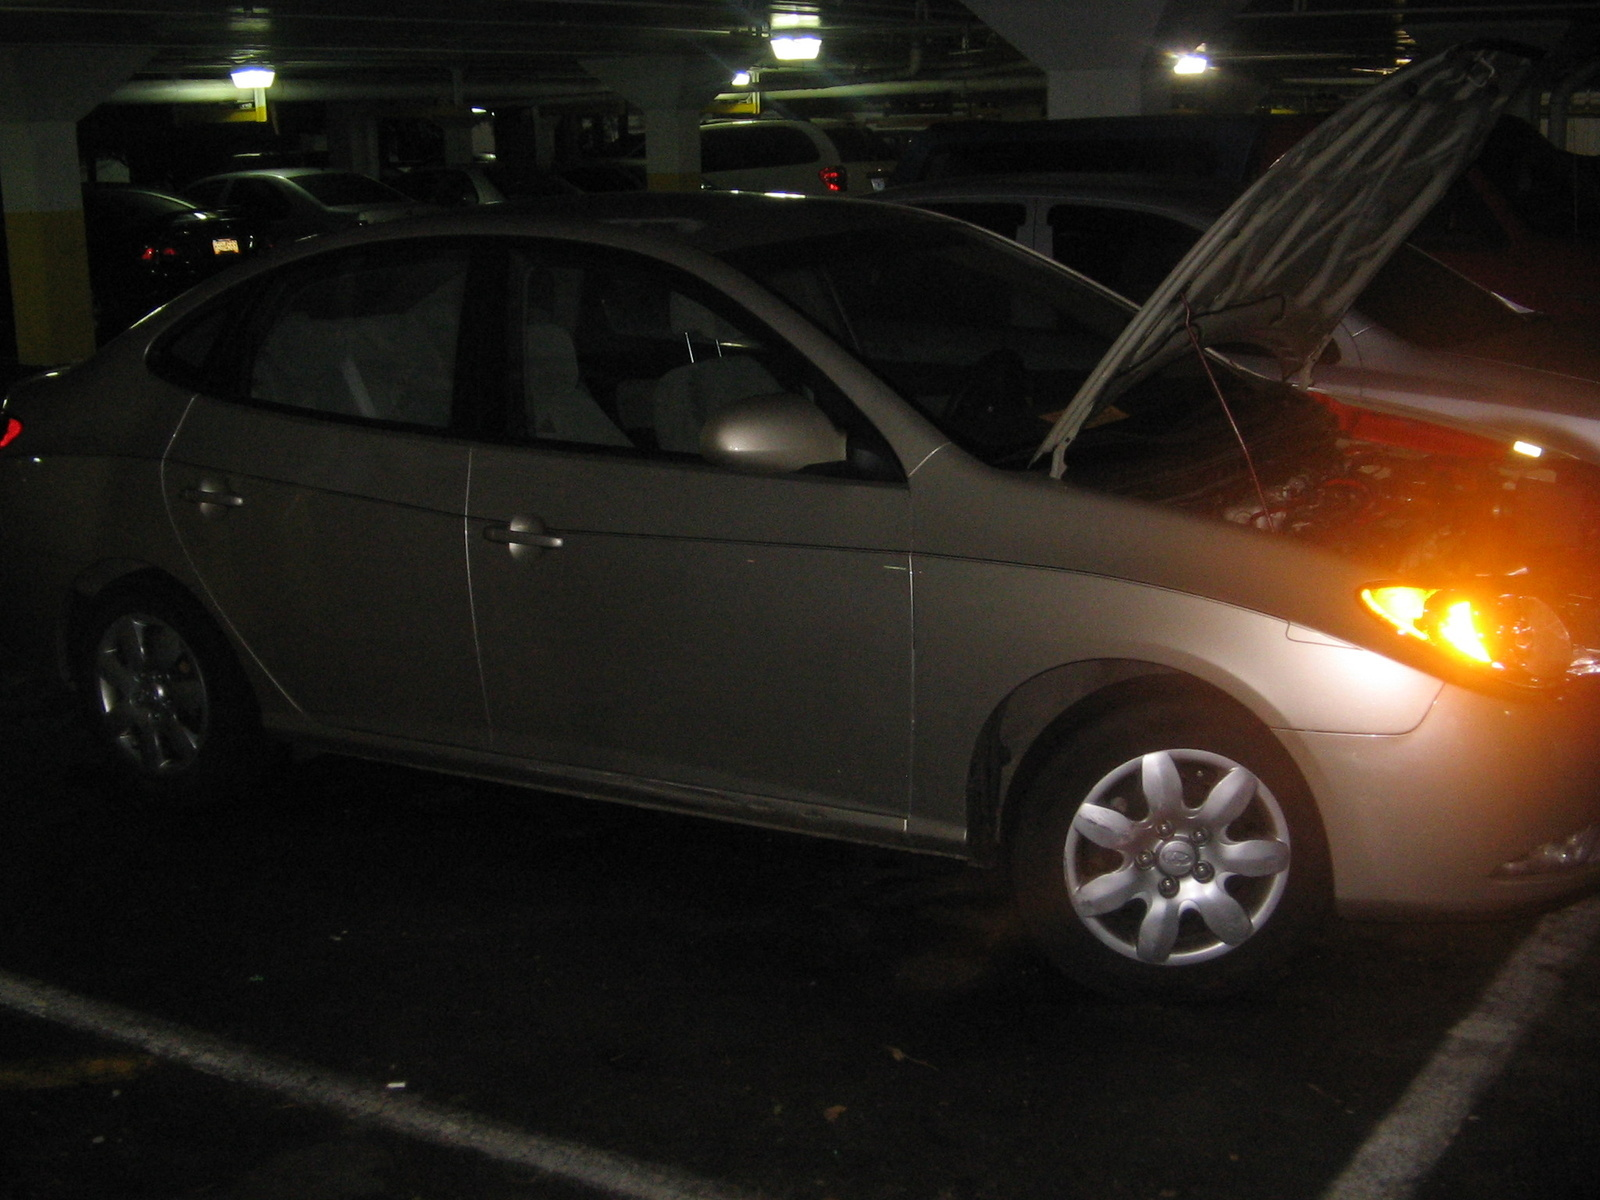 Hyundai Elantra Questions   Does Anyone Have Any Ideas What I Can Do To Make  My Hyundai Elantra A ...   CarGurus